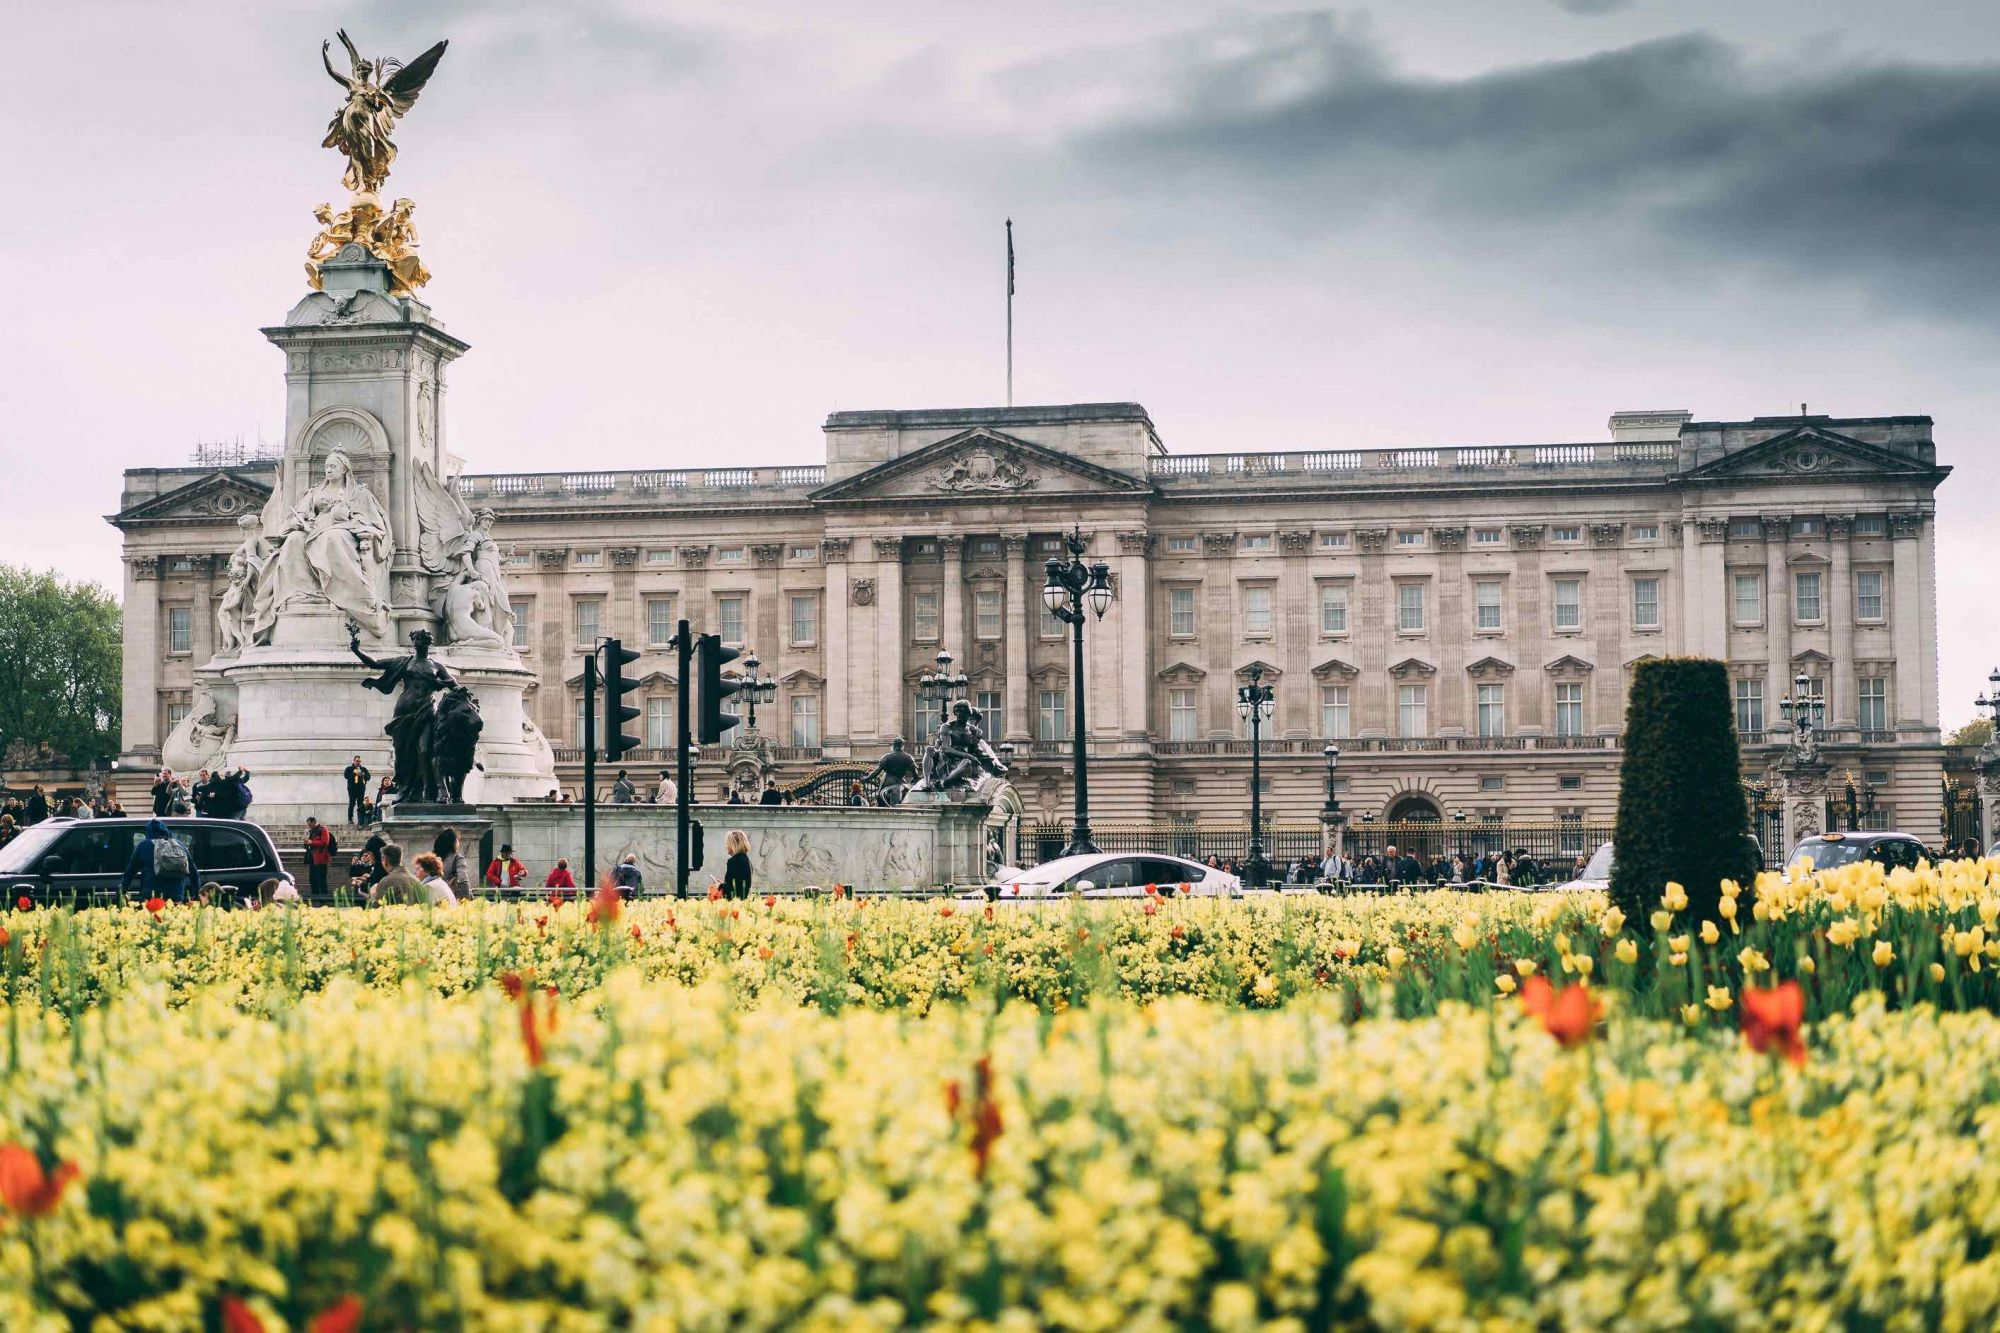 Buckingham Palace's Royal Art Collection to be on Gallery Display For the First Time